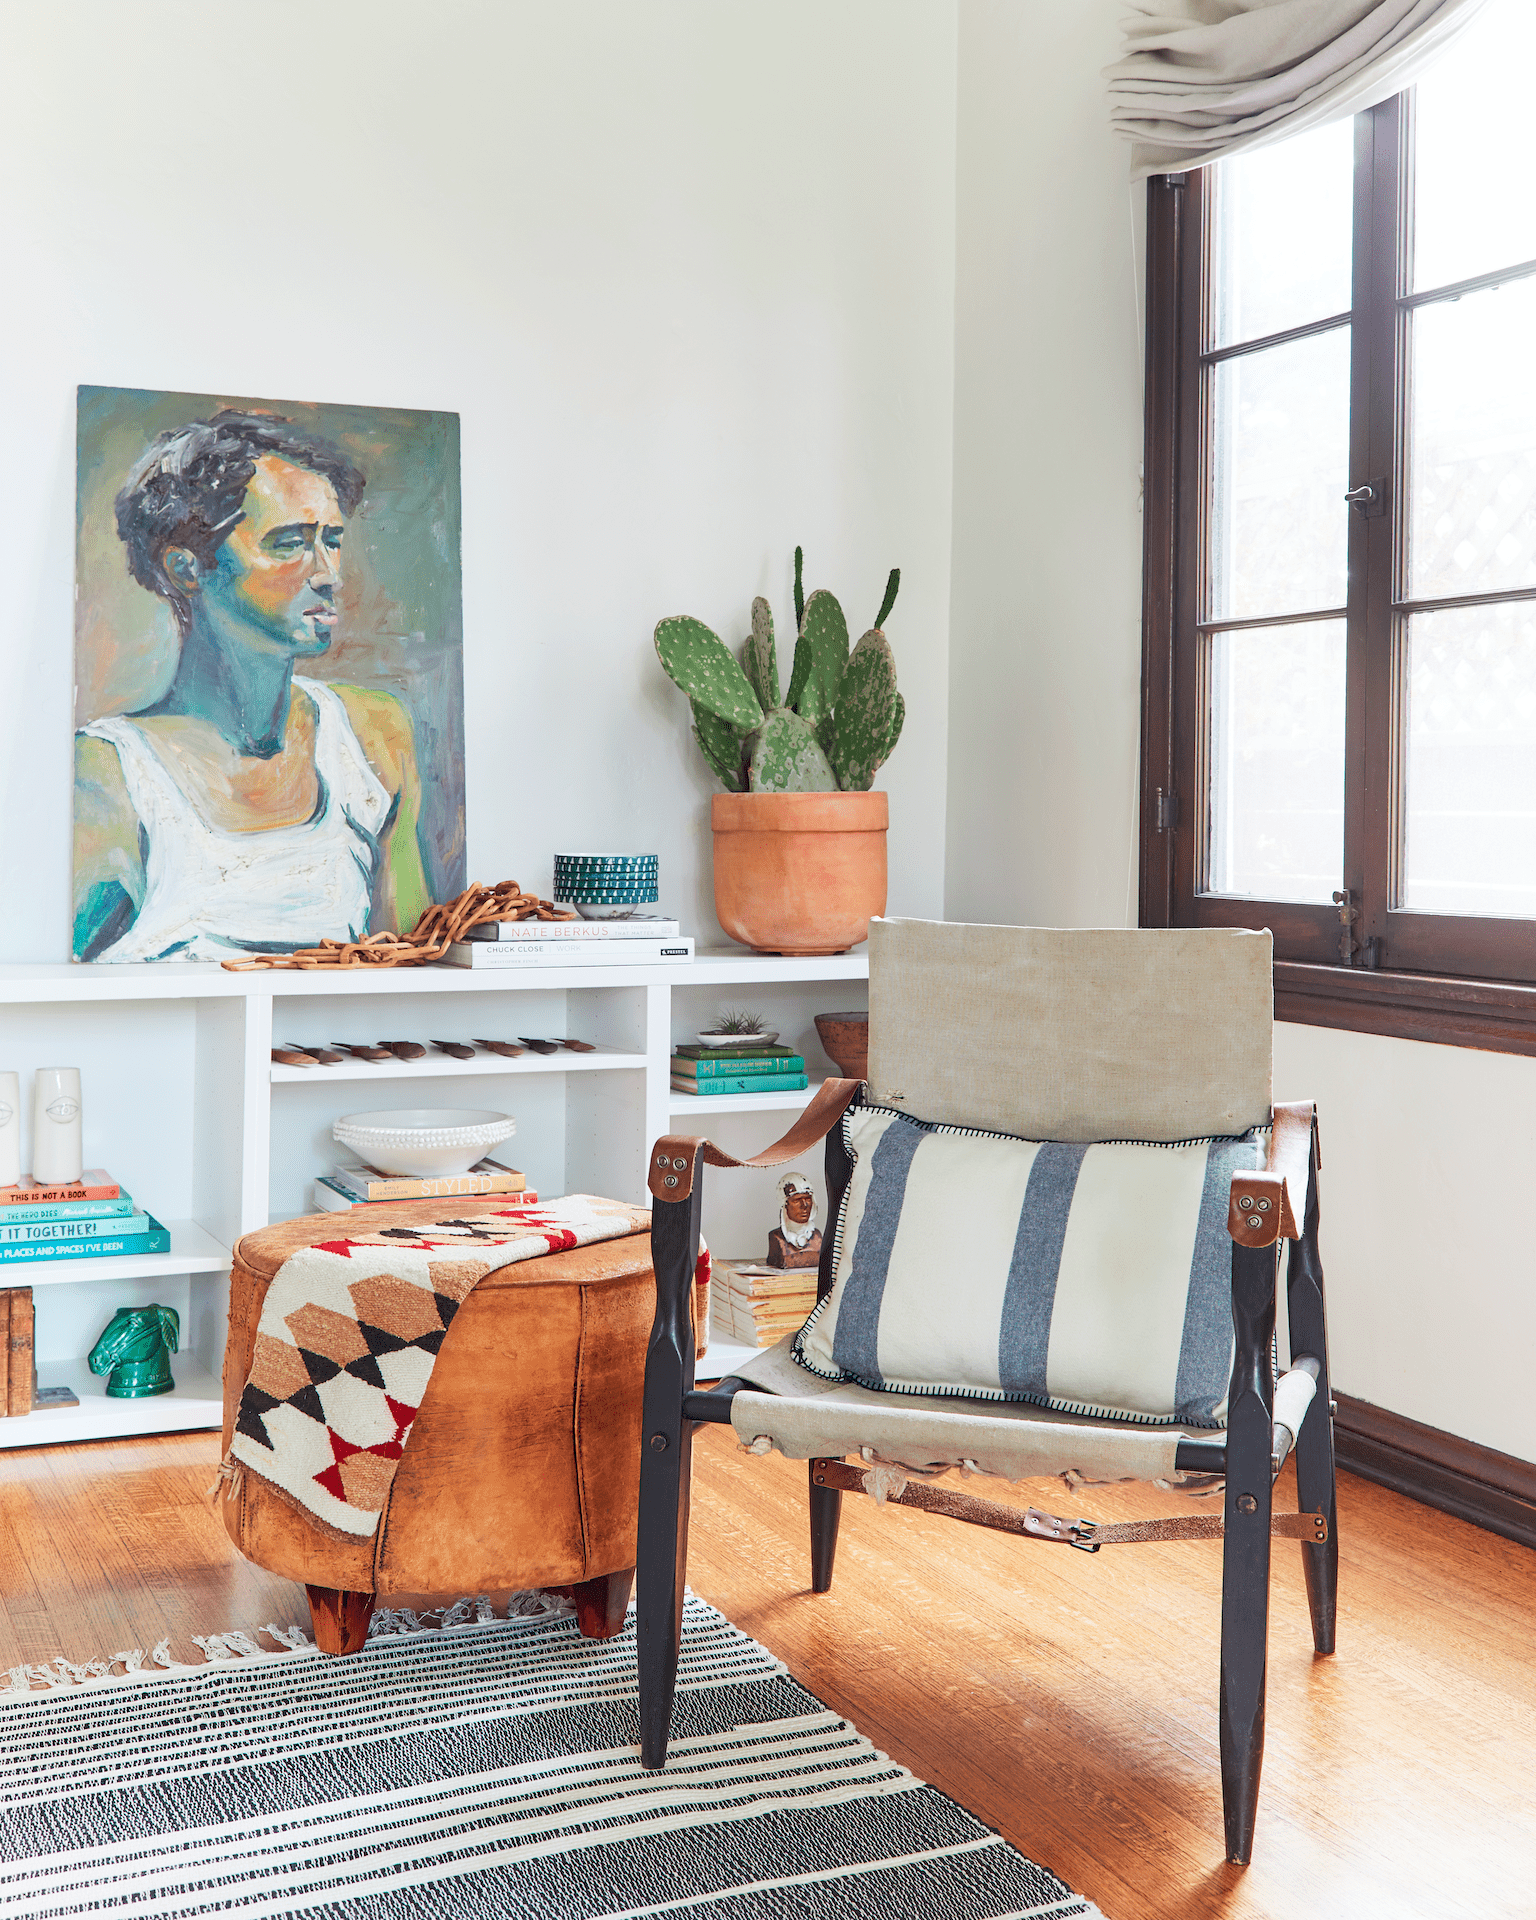 Vintage furniture in a chic Los Angeles living room